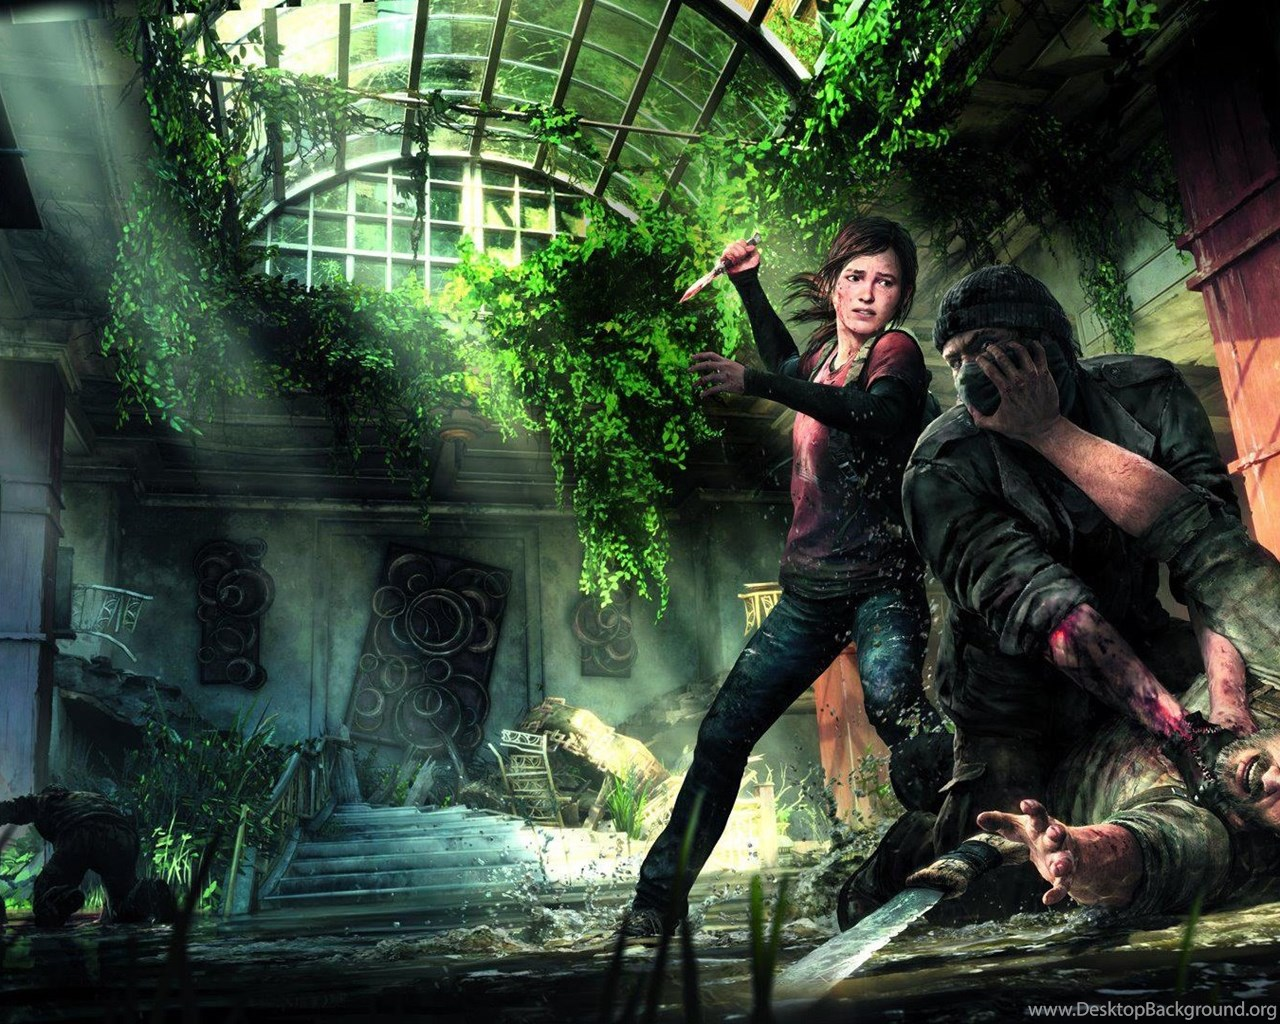 The Last Of Us Ps3 Game Wallpapers 1920x1080 Hd Wallpapers Games